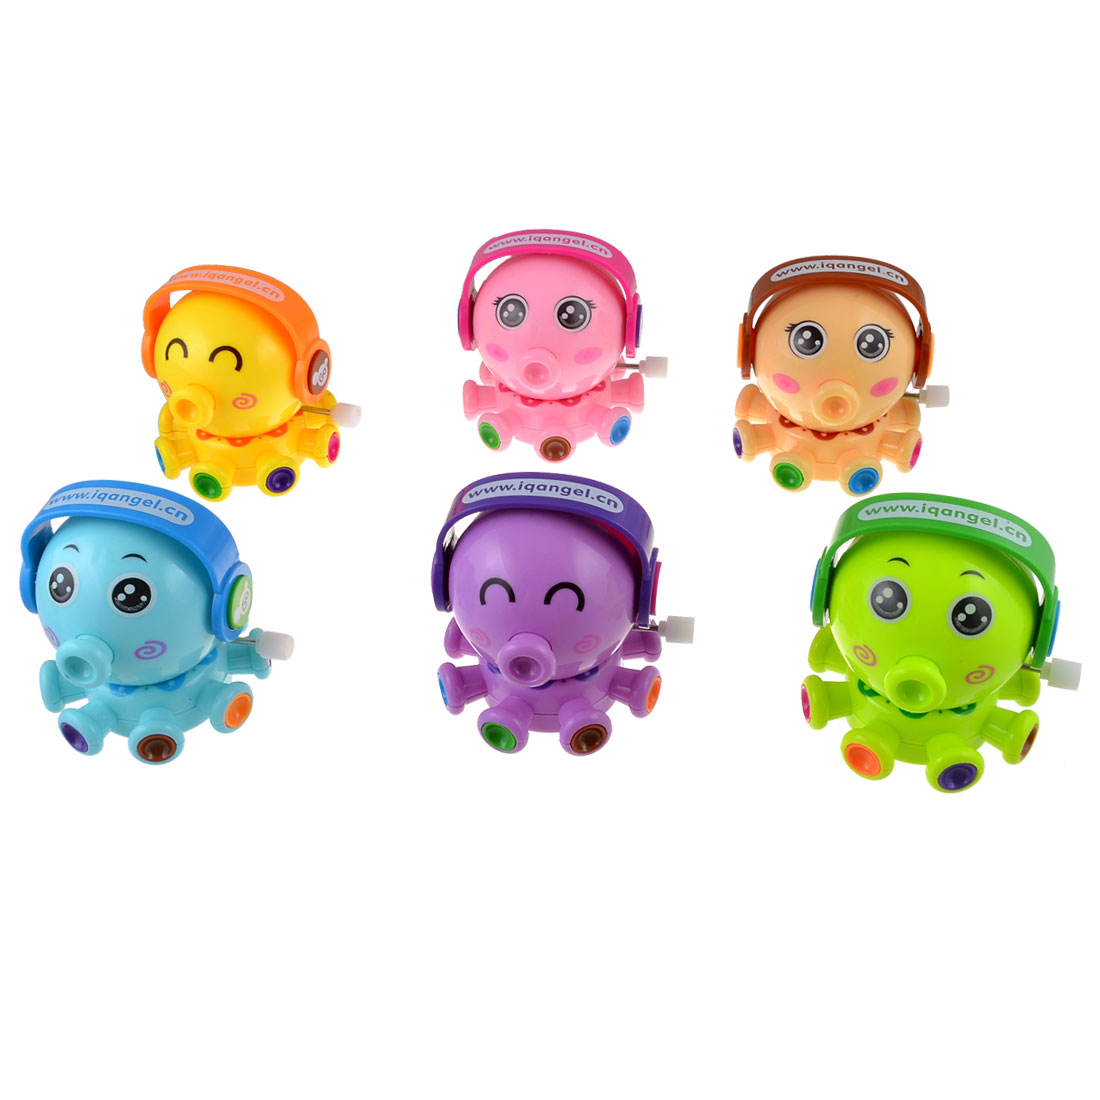 6 Pcs Assorted Color Plastic Cartoon Octopus Wind Up Play Fun Toys for - image 1 de 1